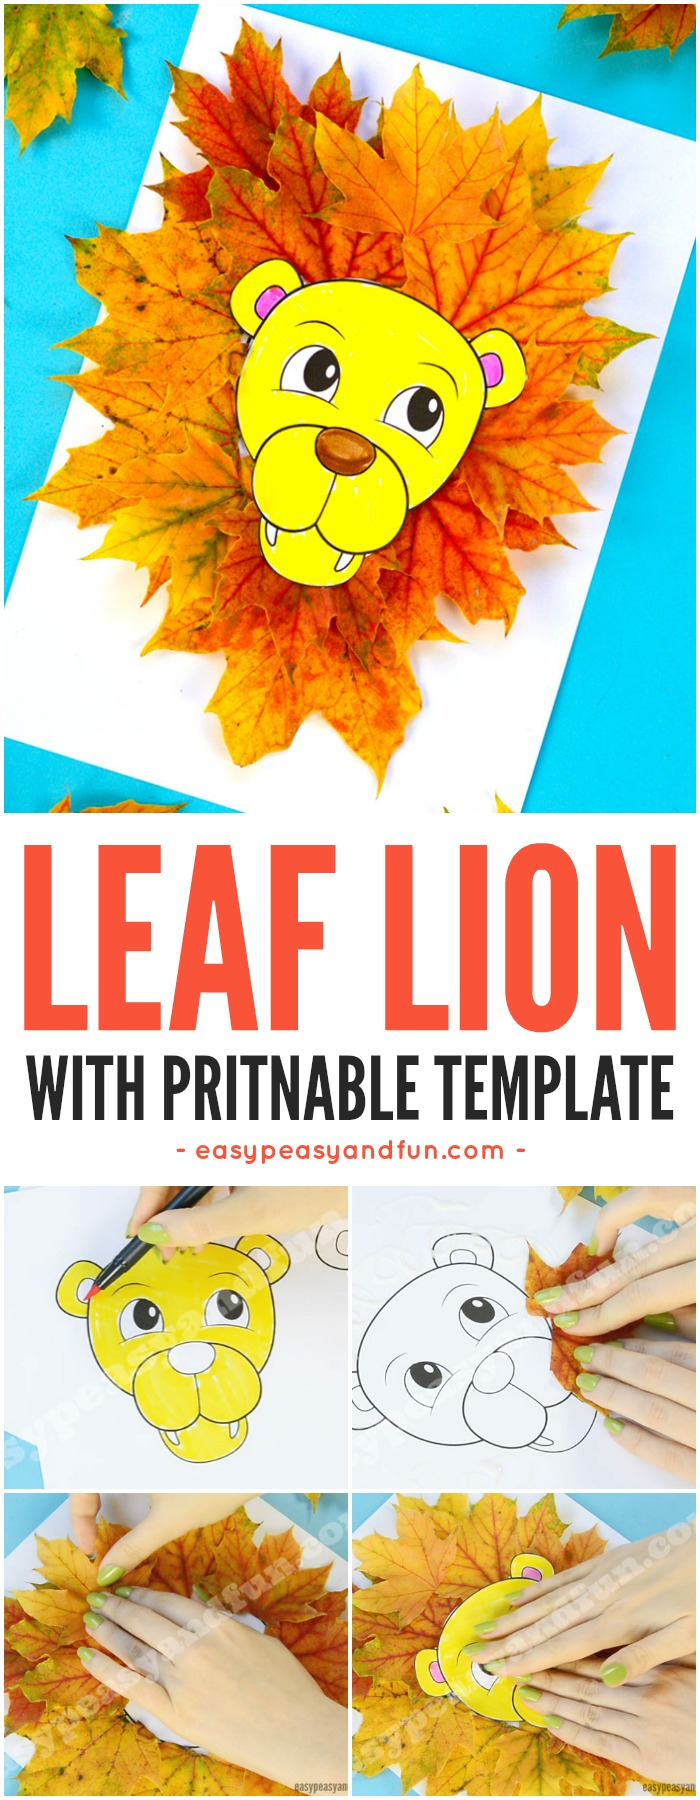 Lion leaf craft for kids with printable template. Fun Fall craft activity for kids in classroom or at home.